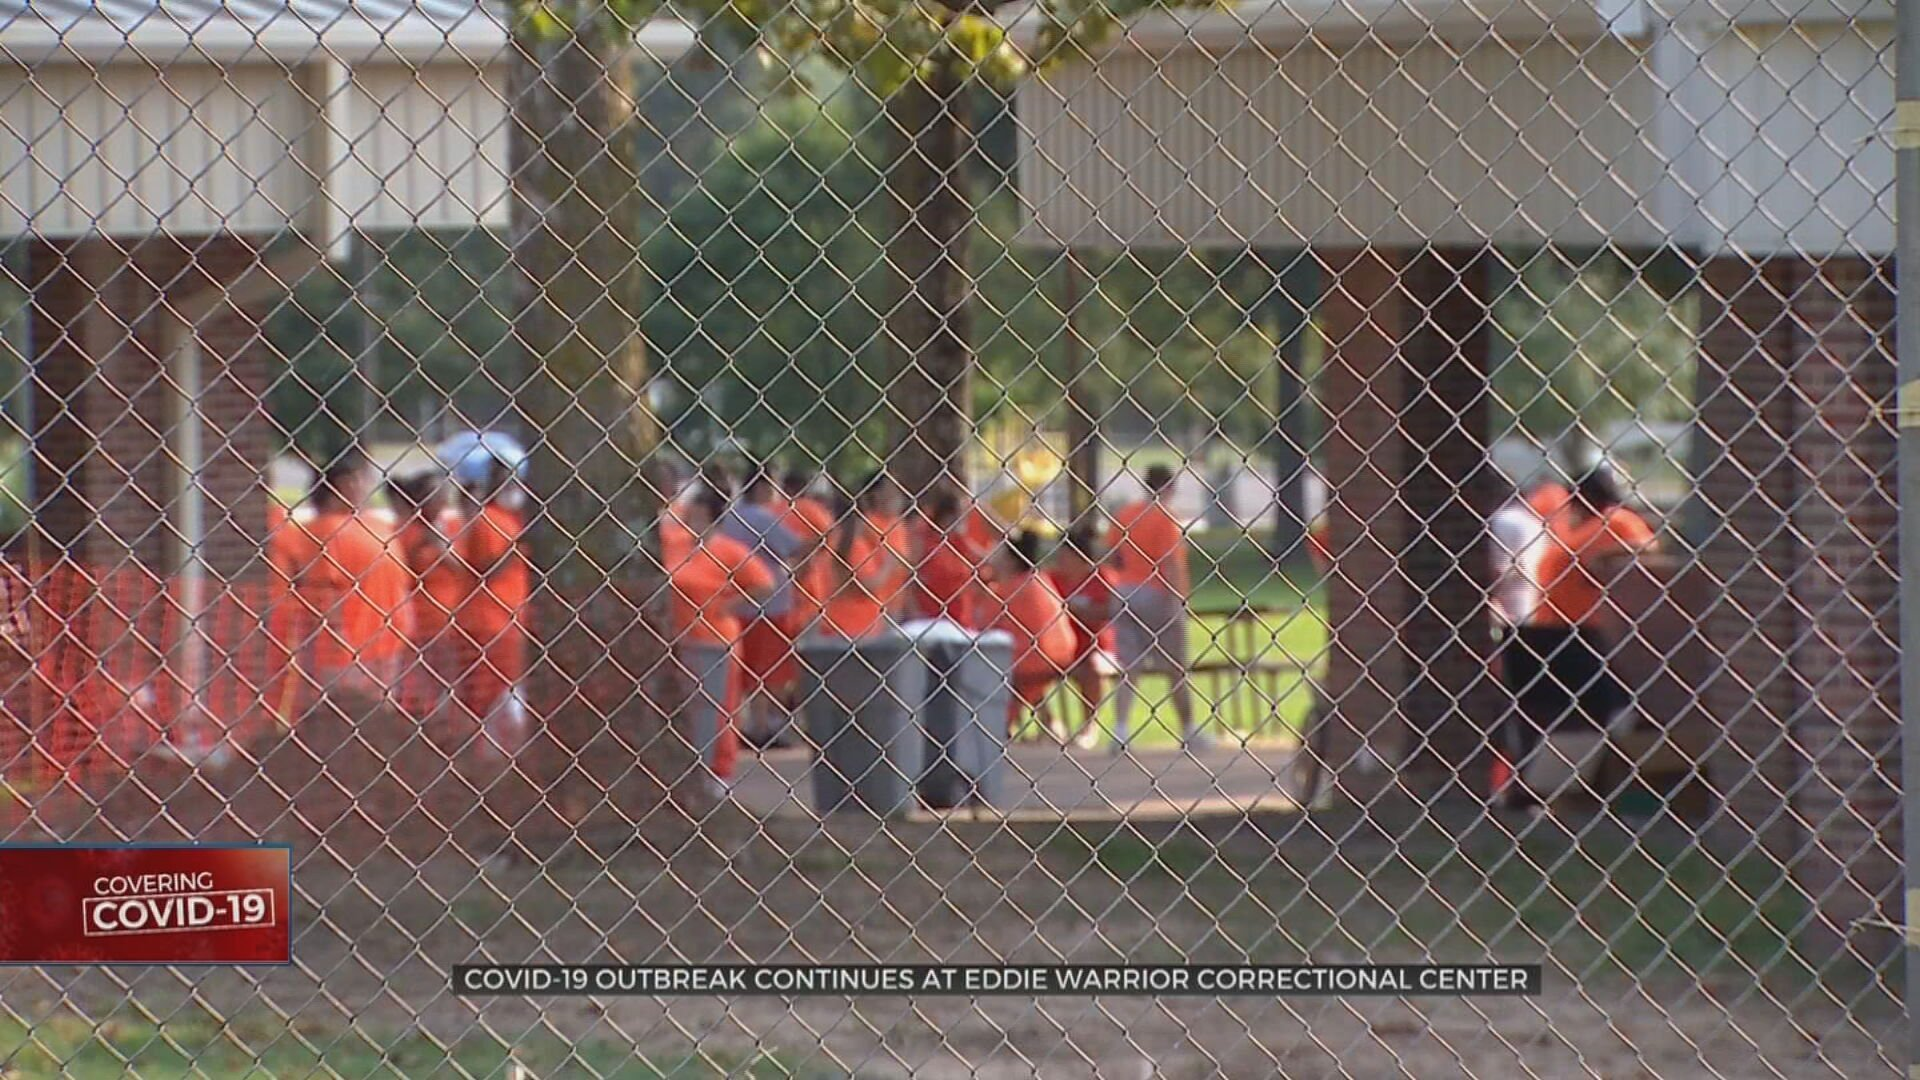 Inmate At Correctional Center Dies After Hospitalization; COVID-19 Outbreak Continues